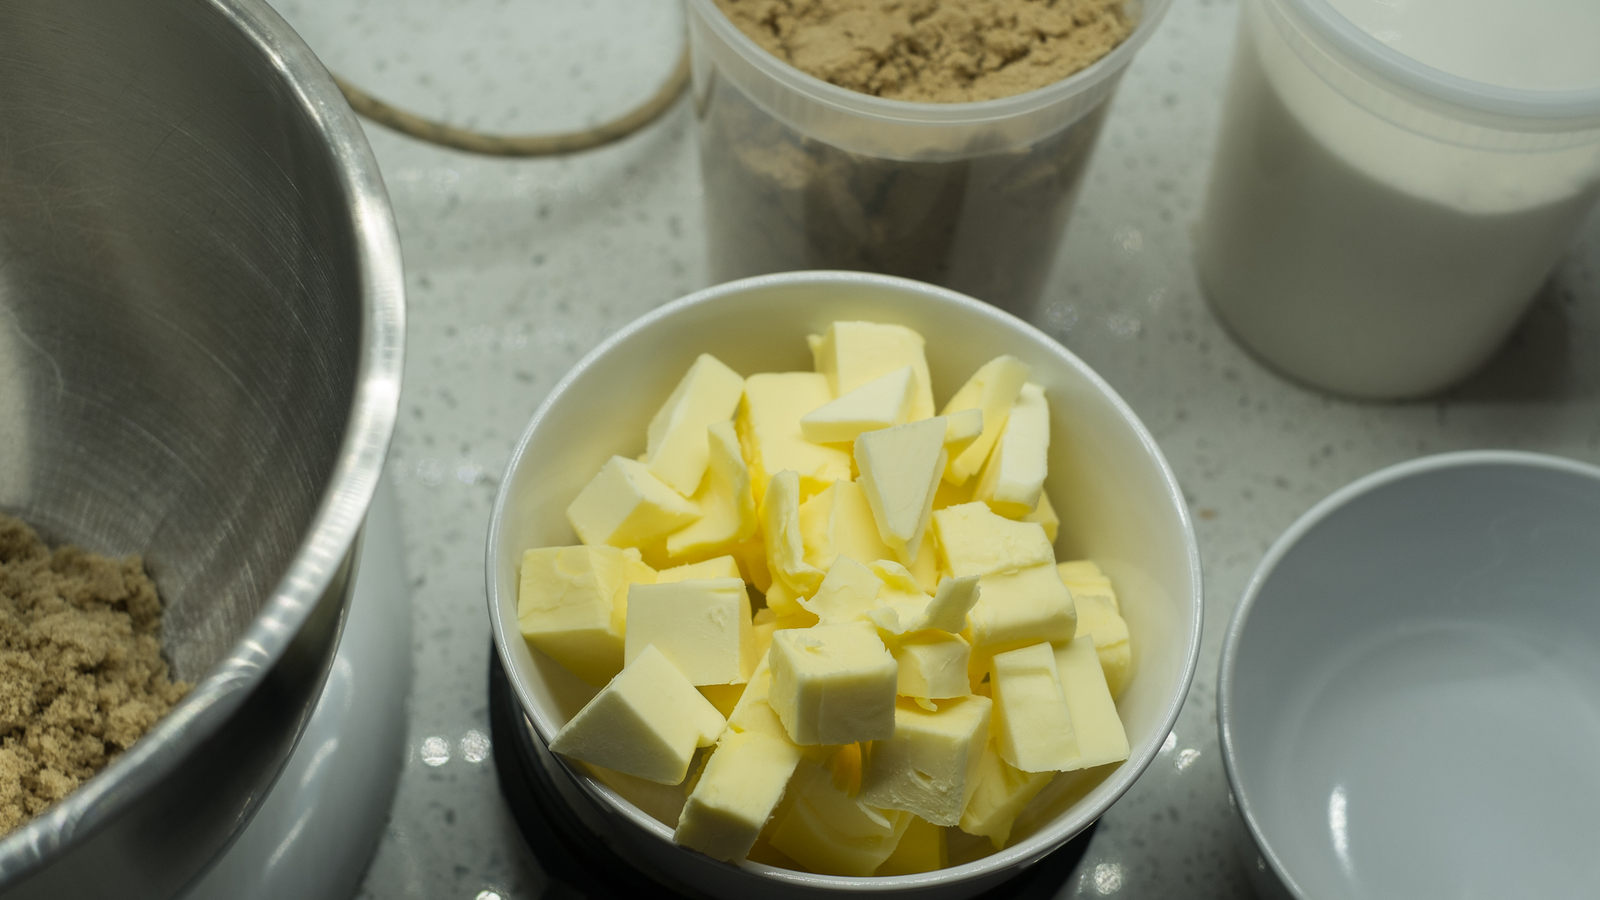 There's 255 grams of butter and 150 grams of sugar—100 white, 50 light brown—measured out here.